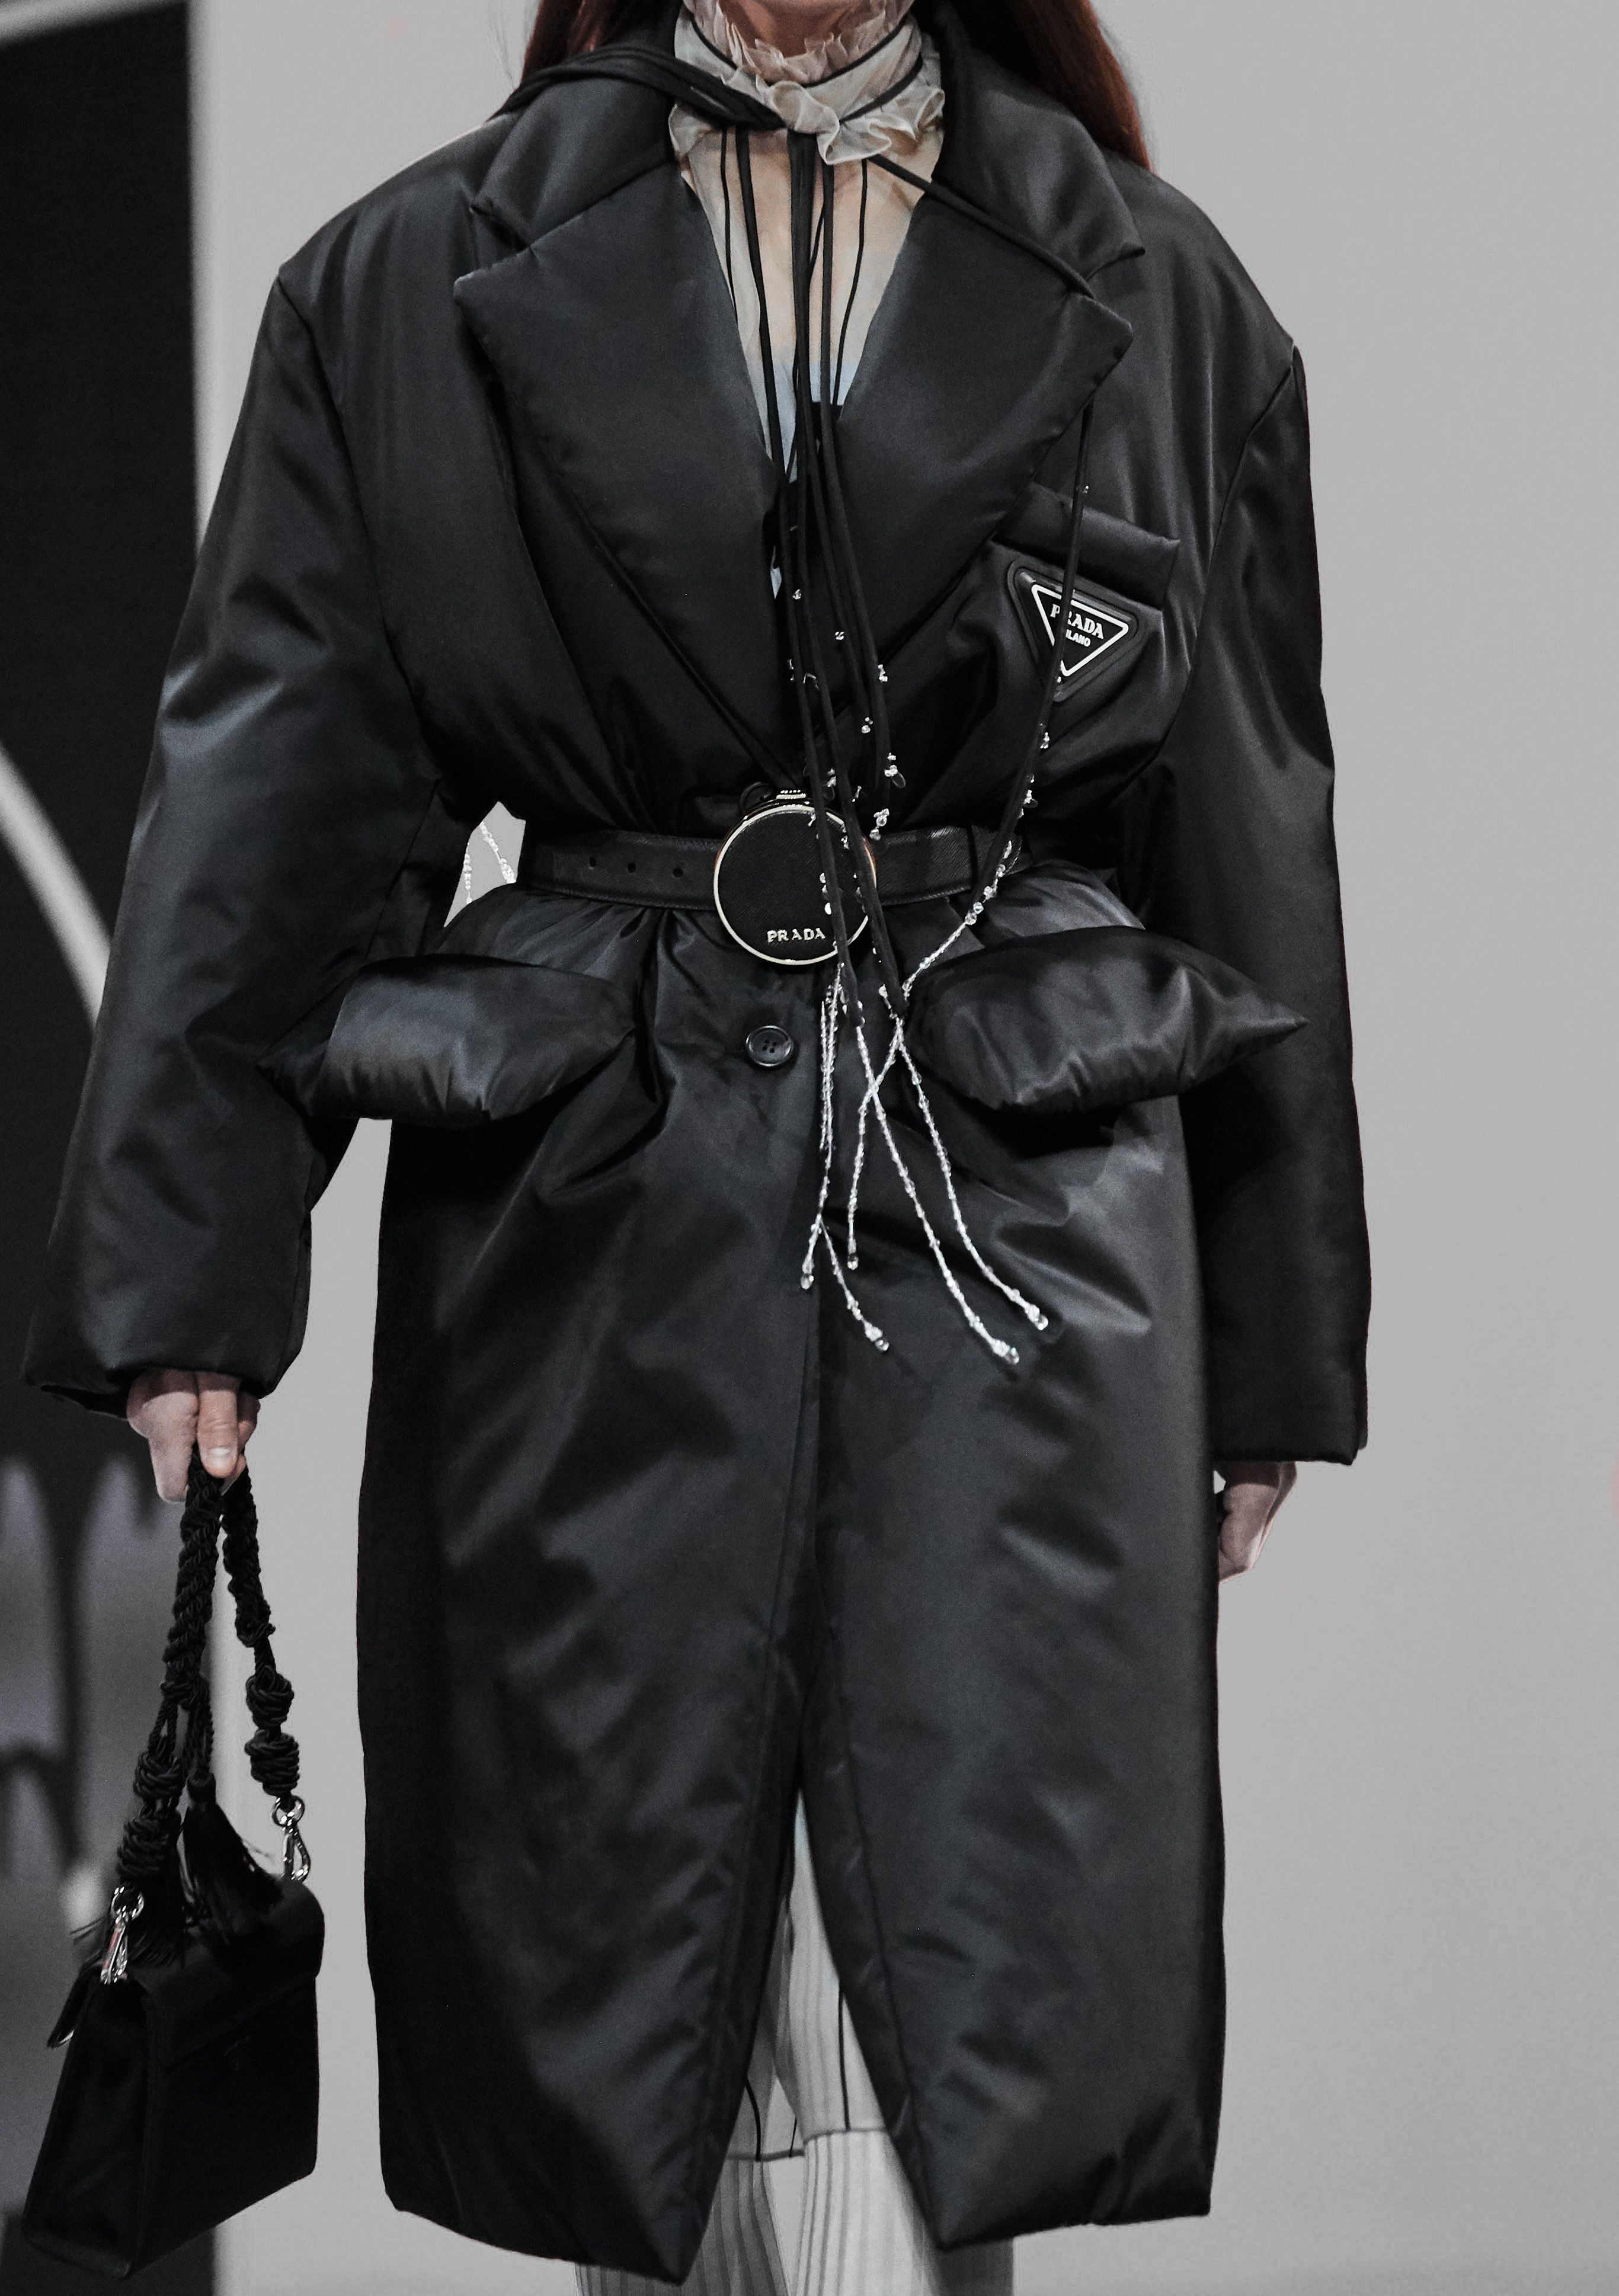 Prada Fall 2020 Clothes Leather Jacket Clothes For Women [ 3875 x 2732 Pixel ]